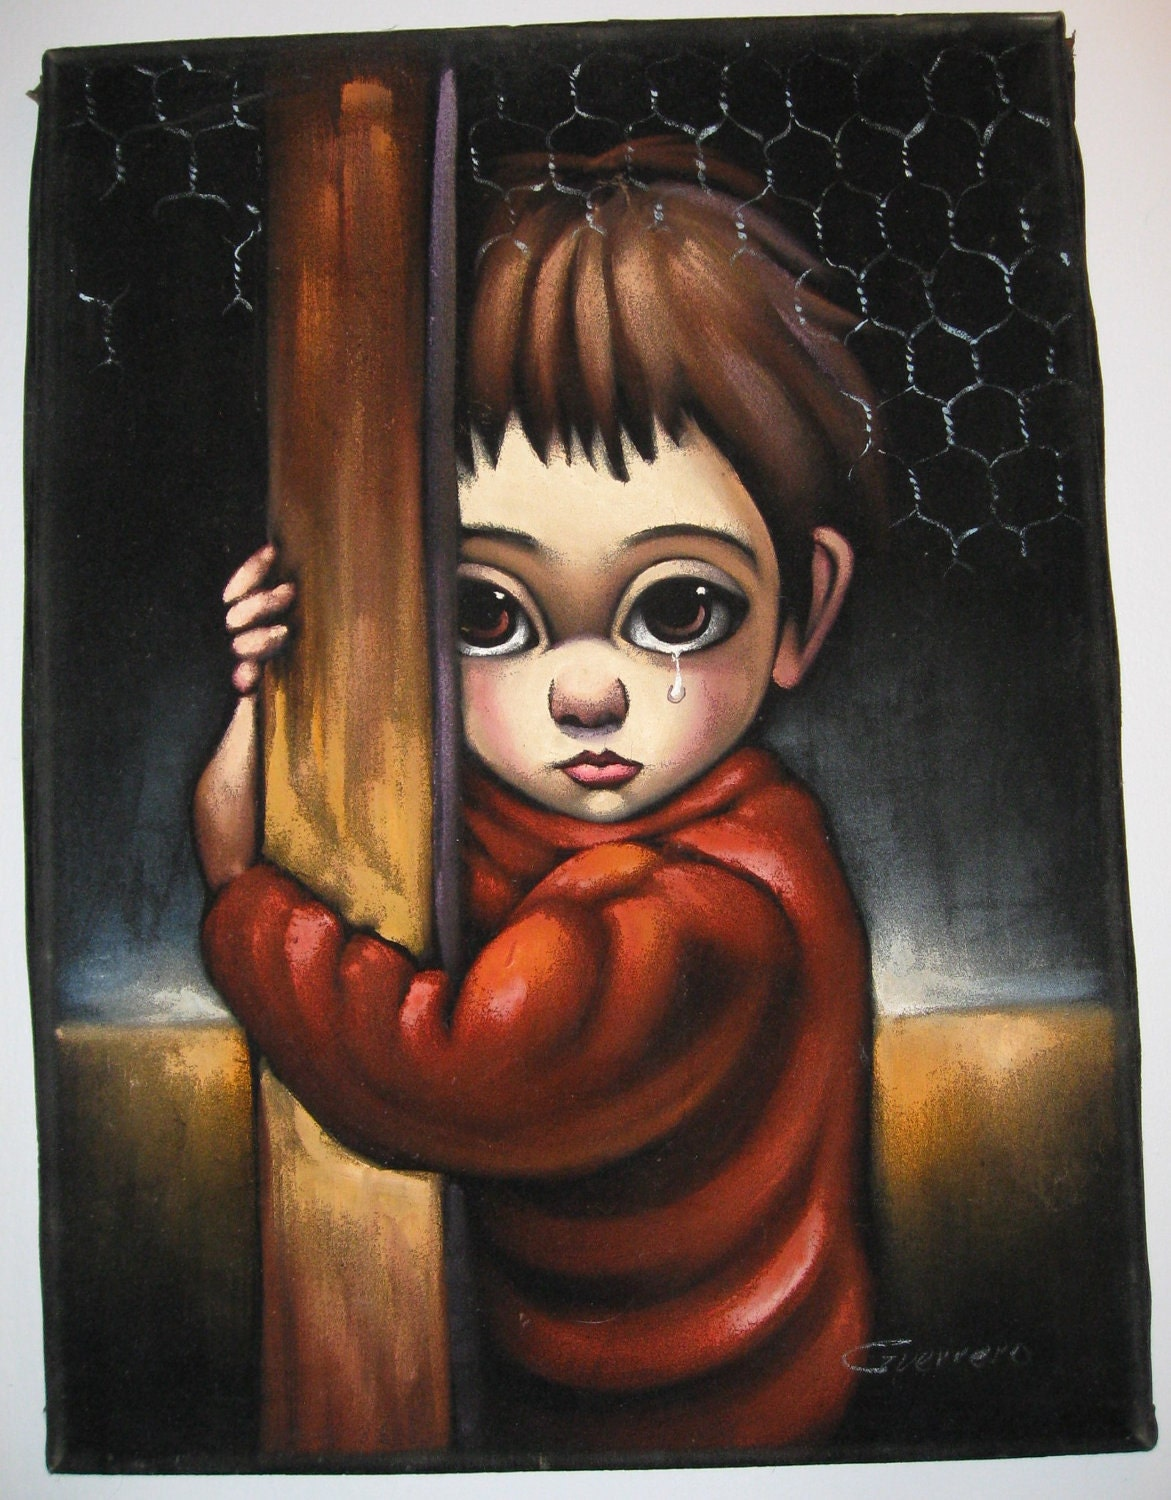 Vintage Big Eyed Boy Black Velvet Painting Signed Guerrero